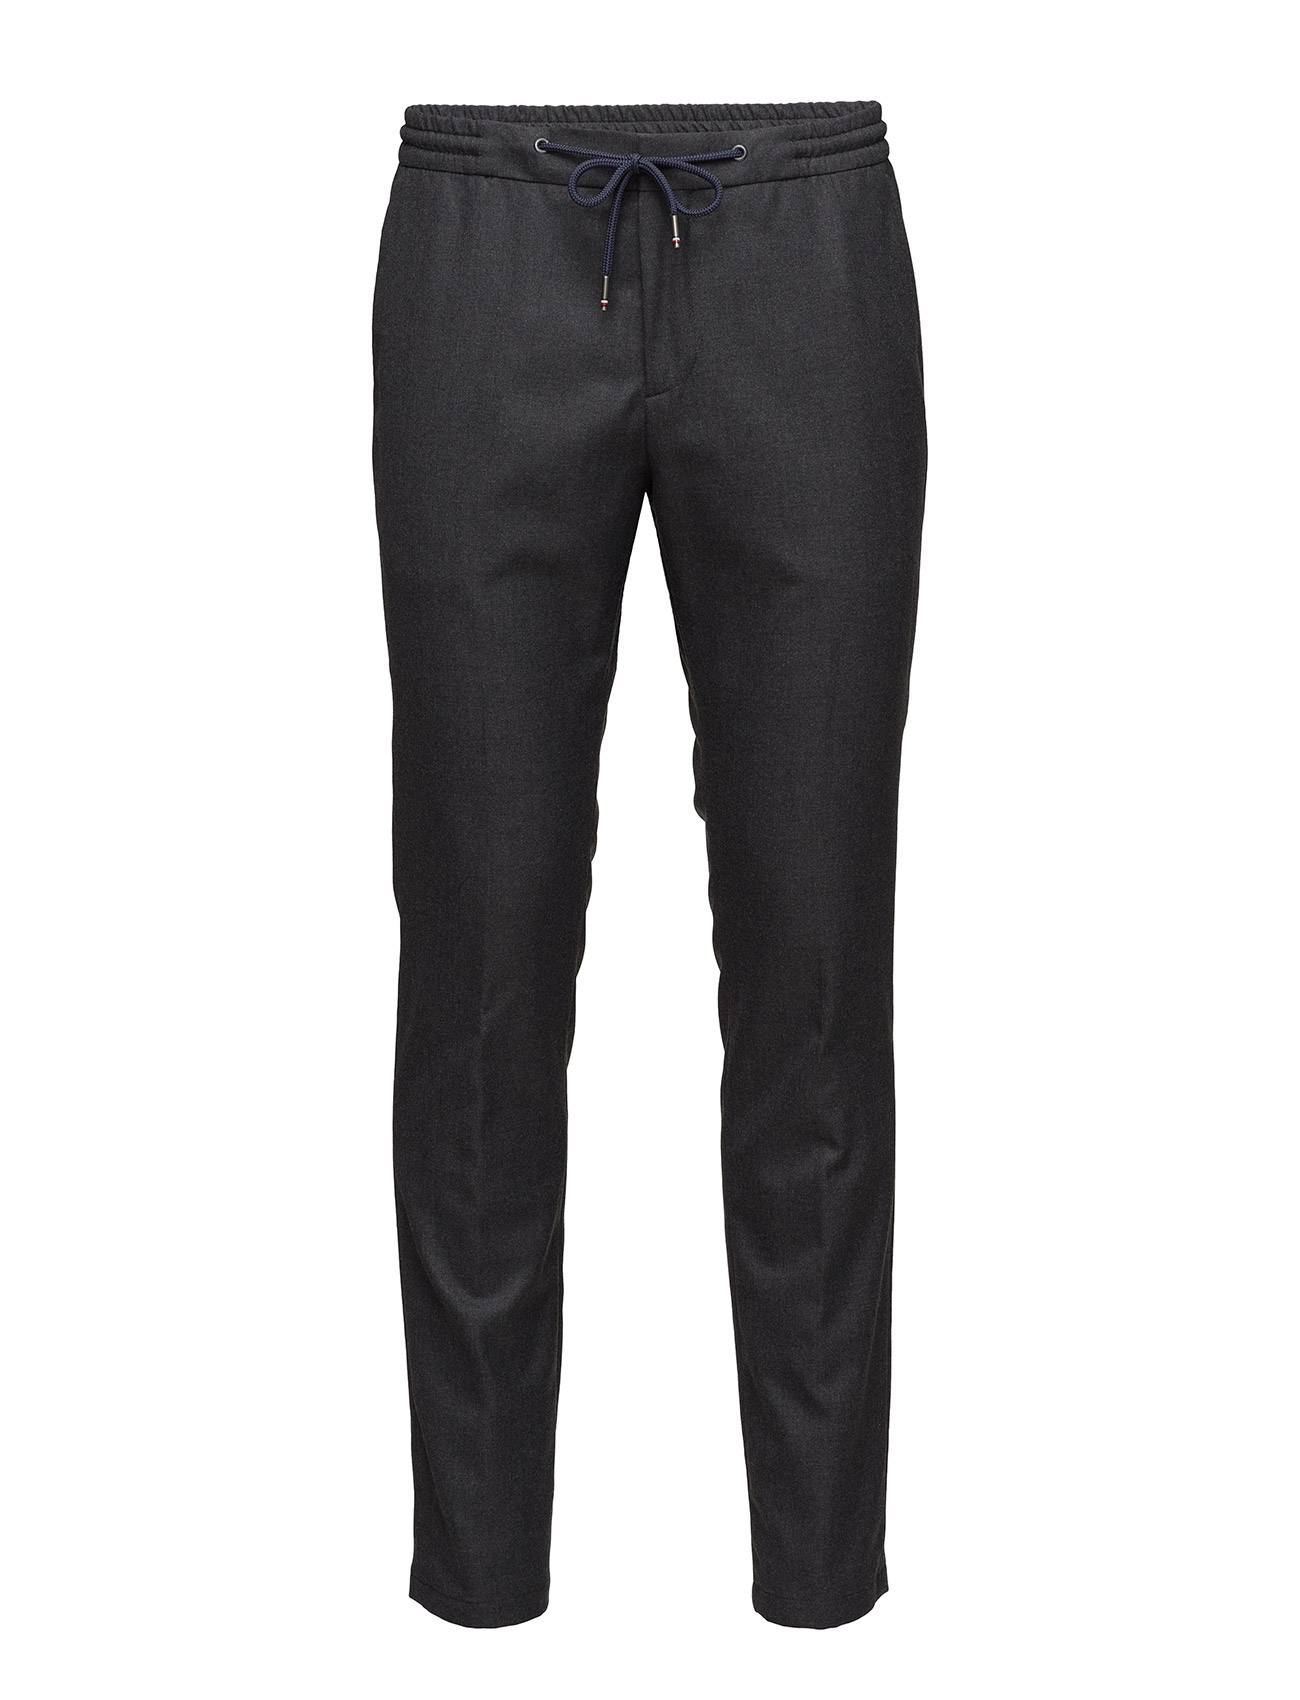 Tommy Hilfiger Tailored Trp Twssld18102, 52